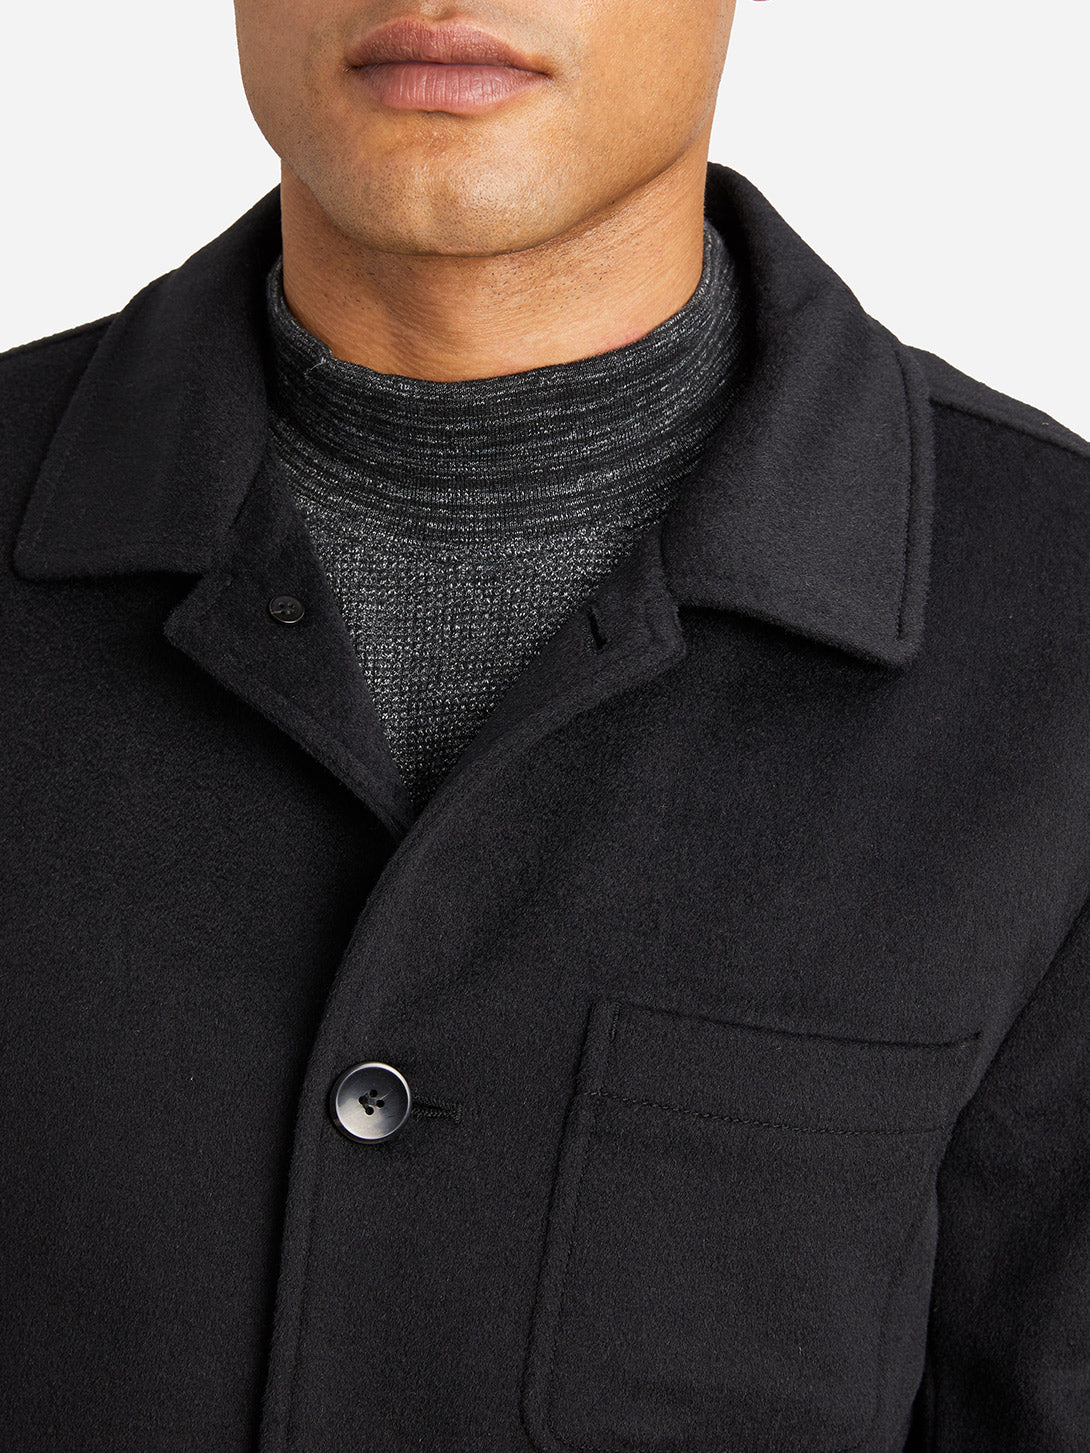 JET BLACK jackets for men damen chore coat ons clothing